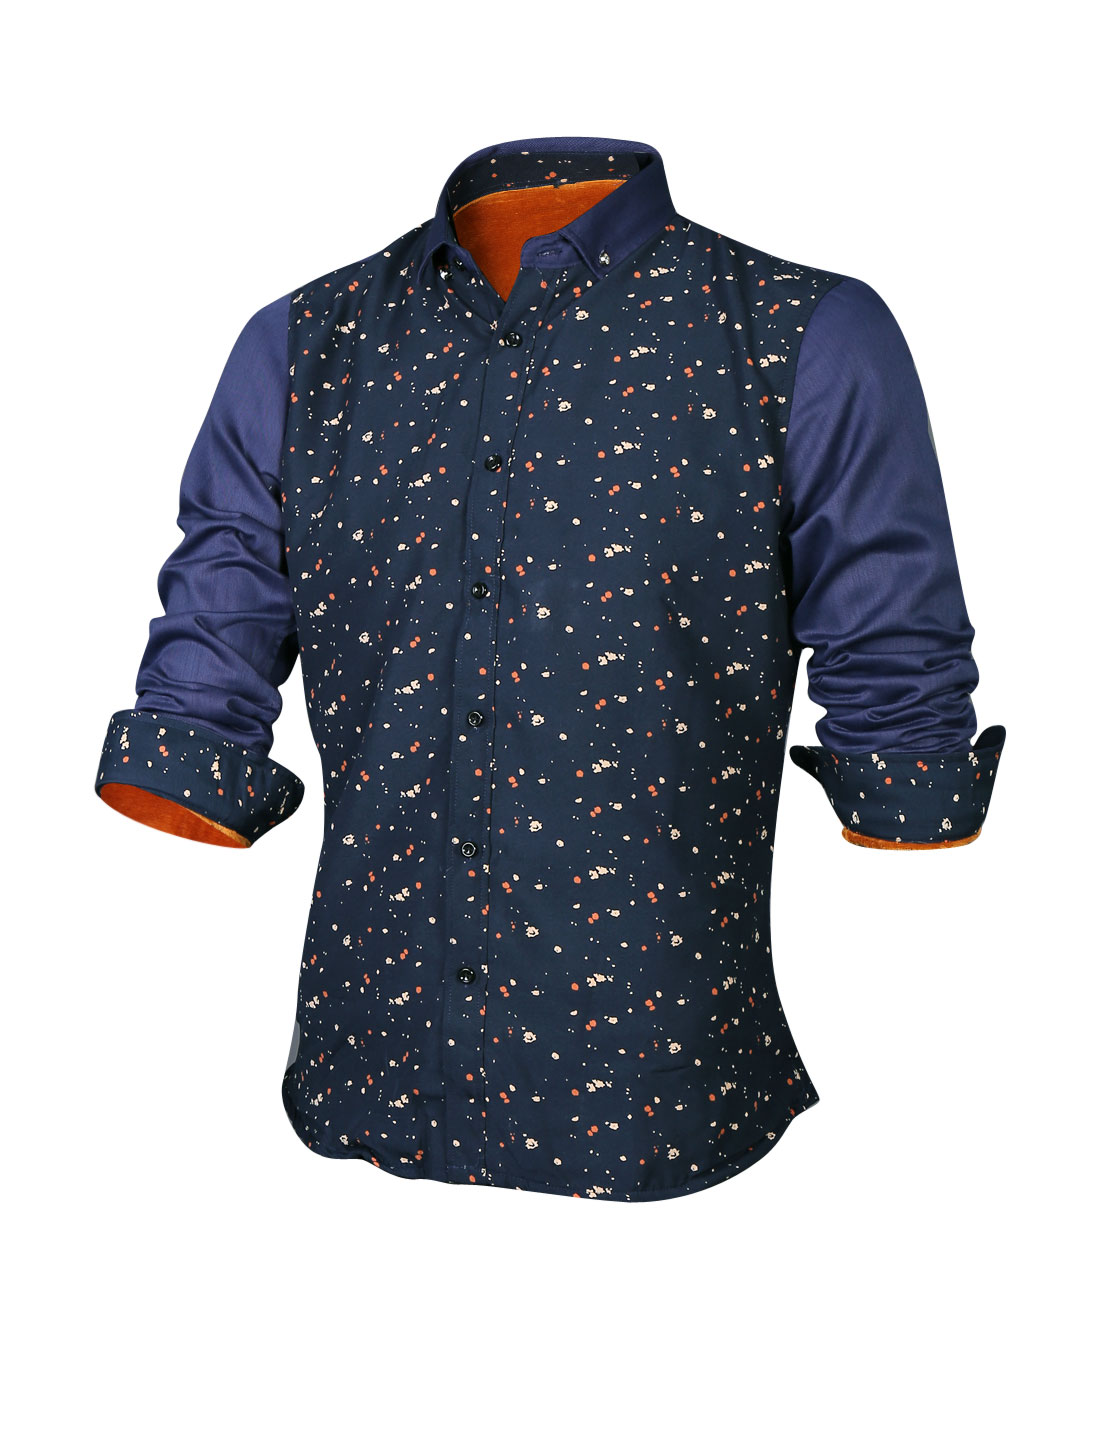 Men Spray-Paint Soft Lined Button Up Heavy Casual Shirt Navy Blue M